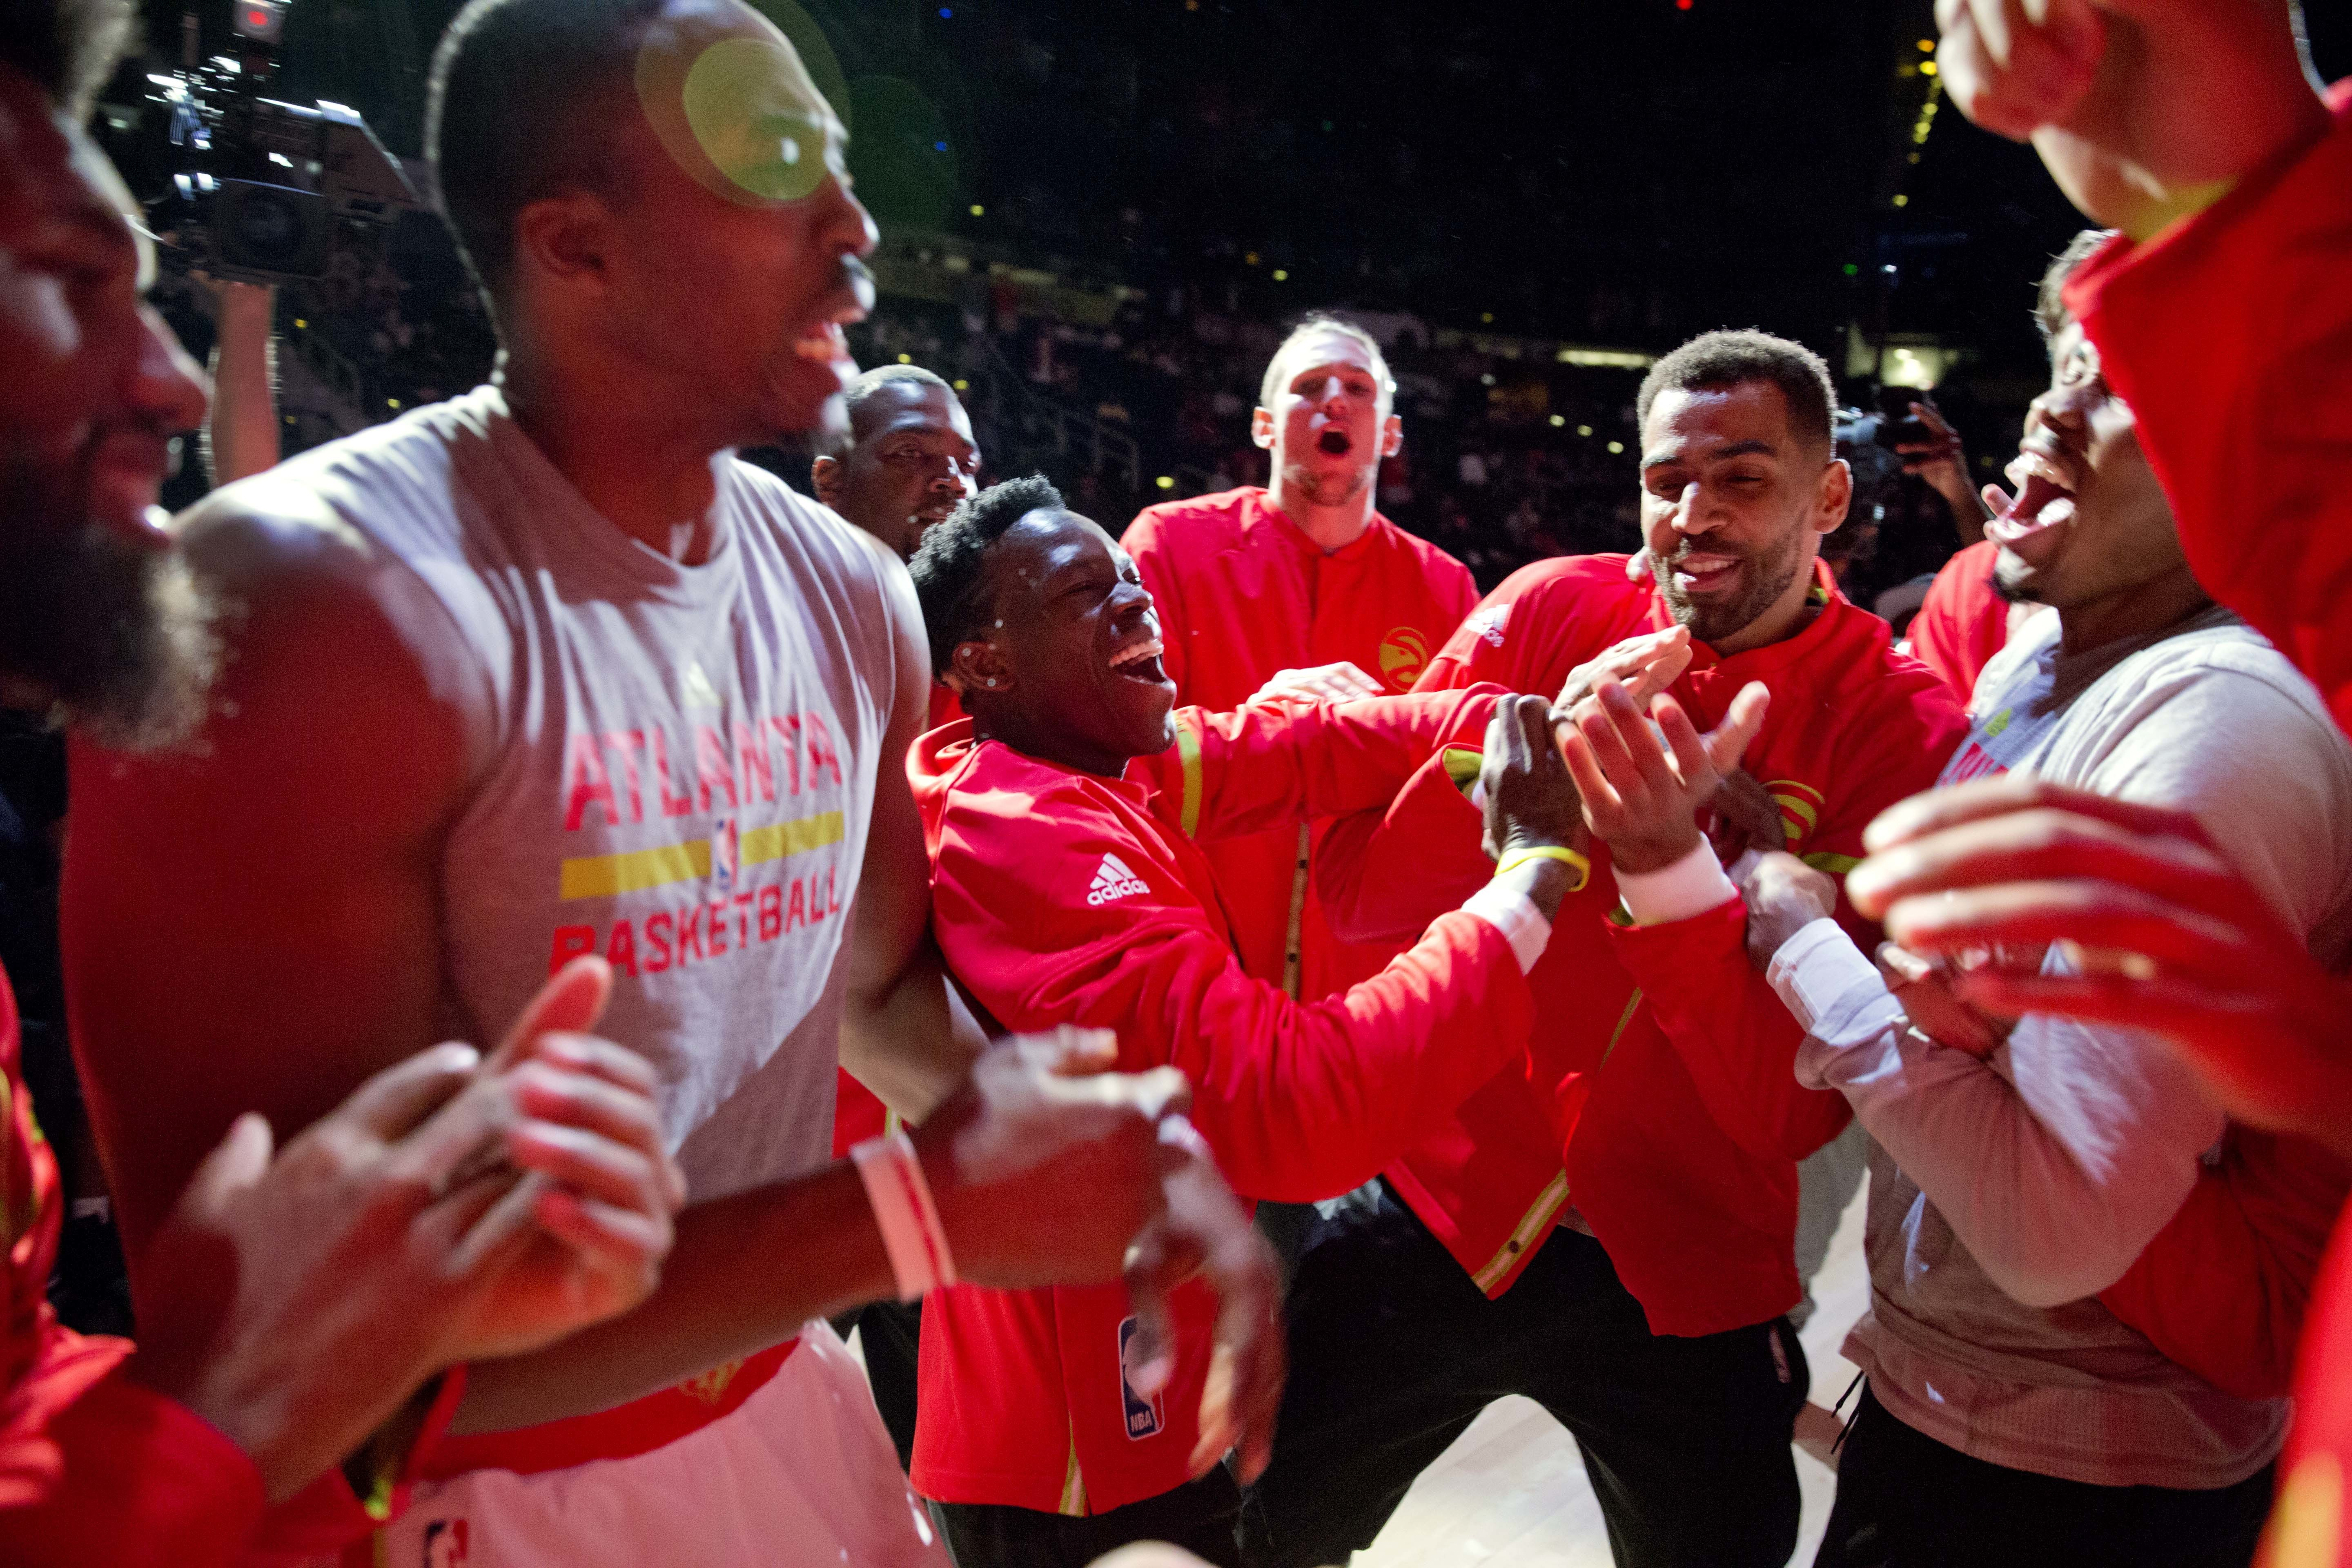 Atlanta Hawks' Dennis Schroder, center left, Thabo Sefolosha, center right, Dwight Howard, left, and fellow teammates cheer in a huddle before the start of an NBA basketball game against the Sacramento Kings in Atlanta, Monday, Oct. 31, 2016.